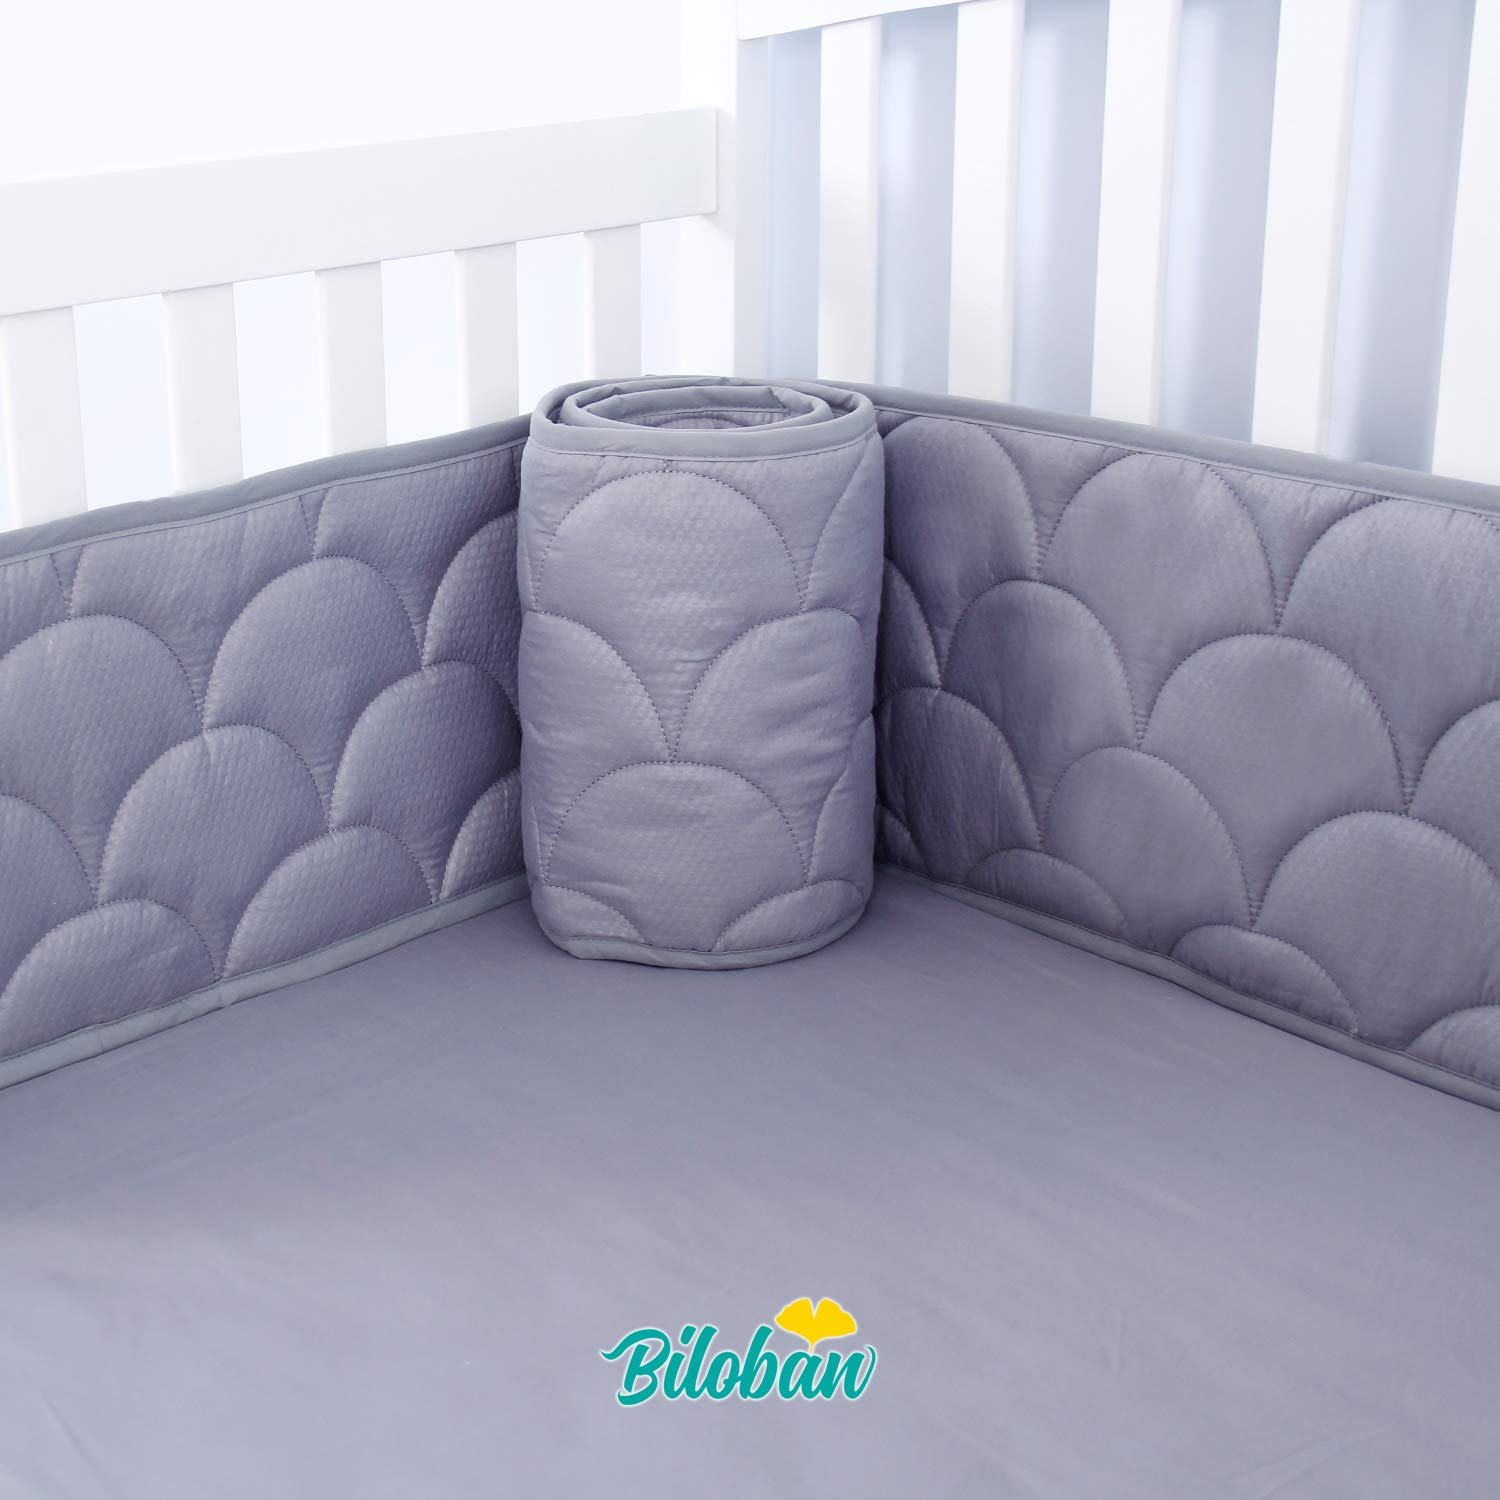 Baby Bumper for Cribs, Safe & Washable Baby Bedding Bumpers Crib Padded Liners for Boys, 4 Piece/Set Fit Standard Crib 52 x 38, Gray by Biloban